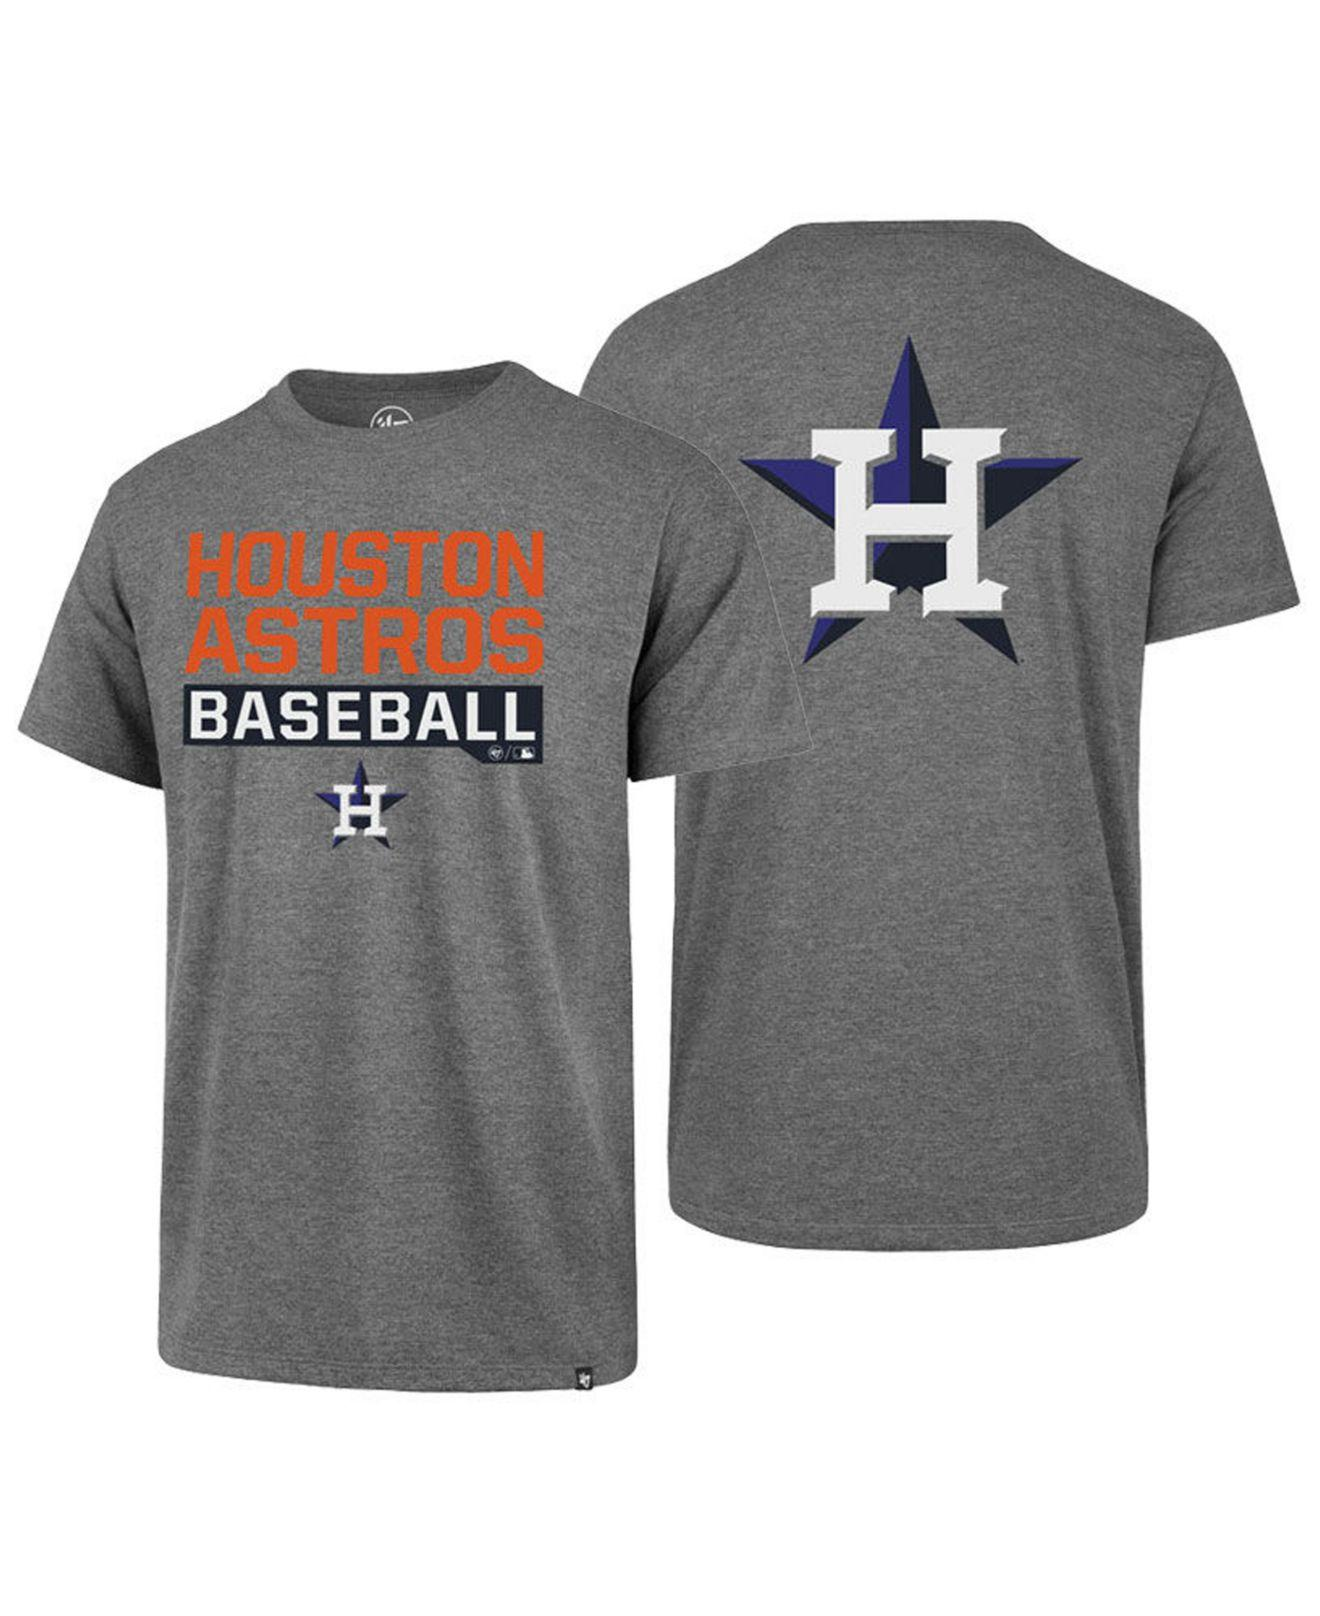 3648d5cd6c1ca Lyst - 47 Brand Houston Astros Rival Bases Loaded T-shirt in Gray ...